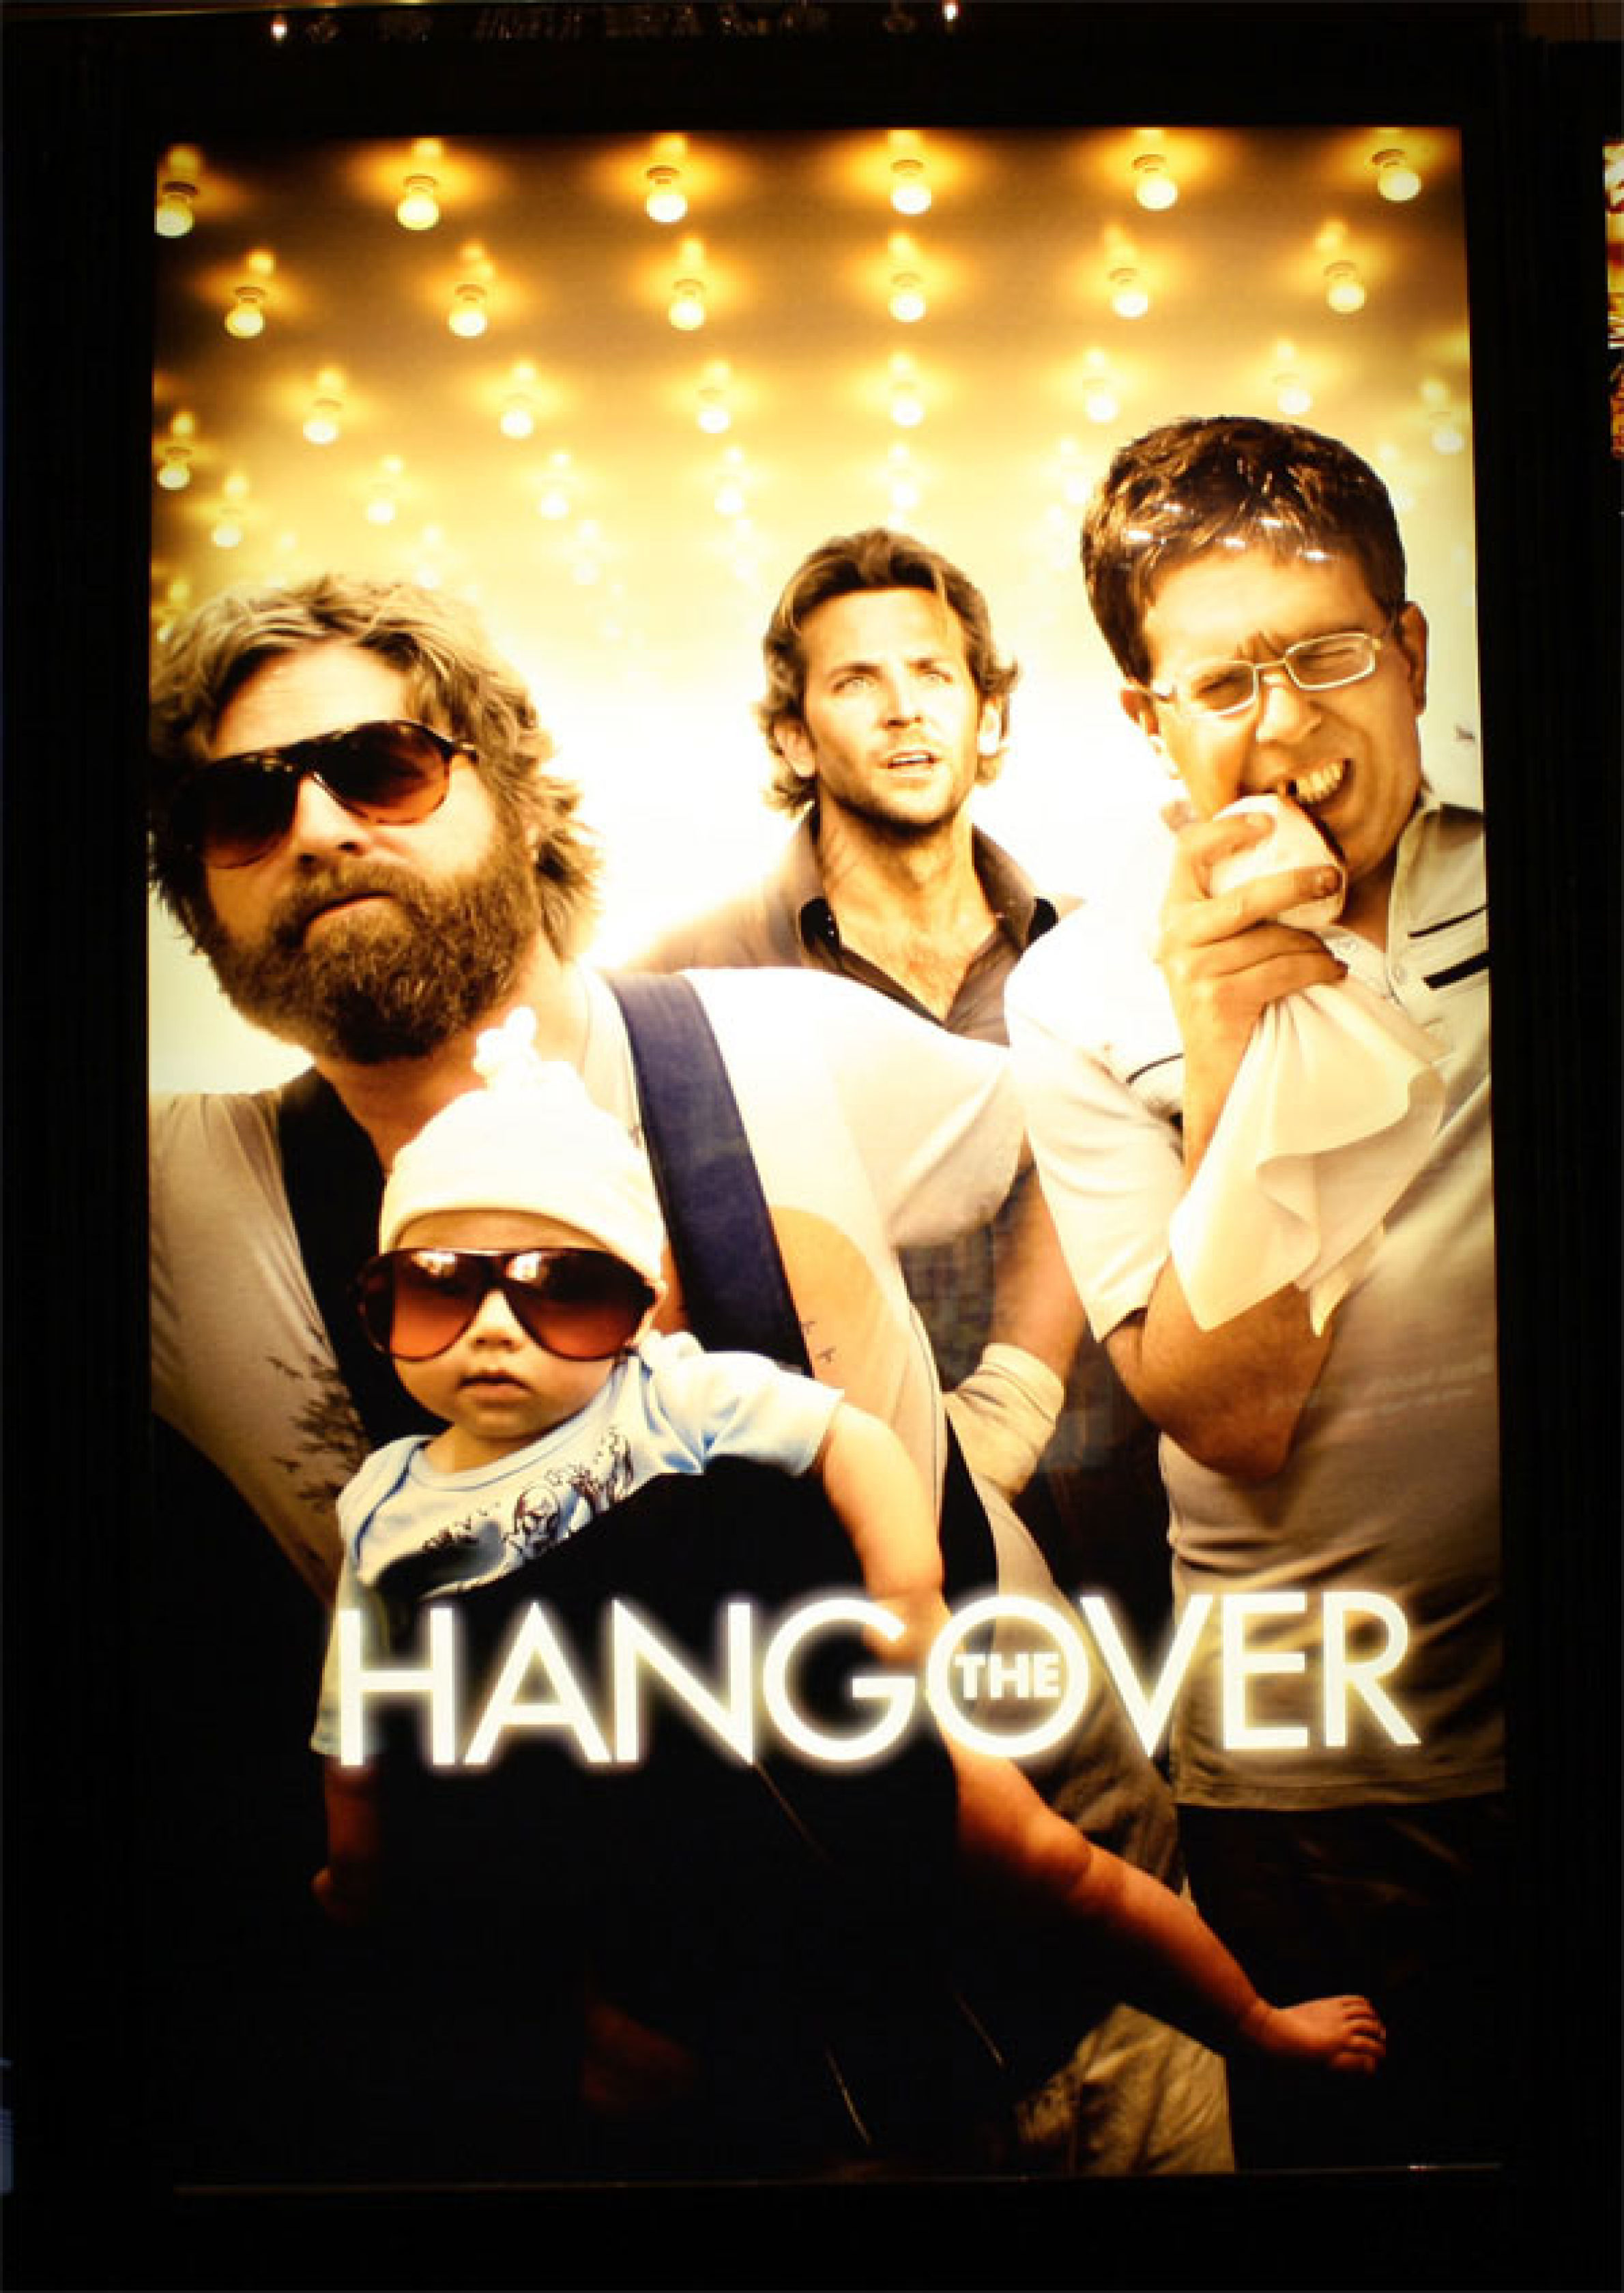 """Zach Galifianakis, Bradley Cooper and Ed Helms appear on the movie poster for 2009's """"The Hangover."""""""